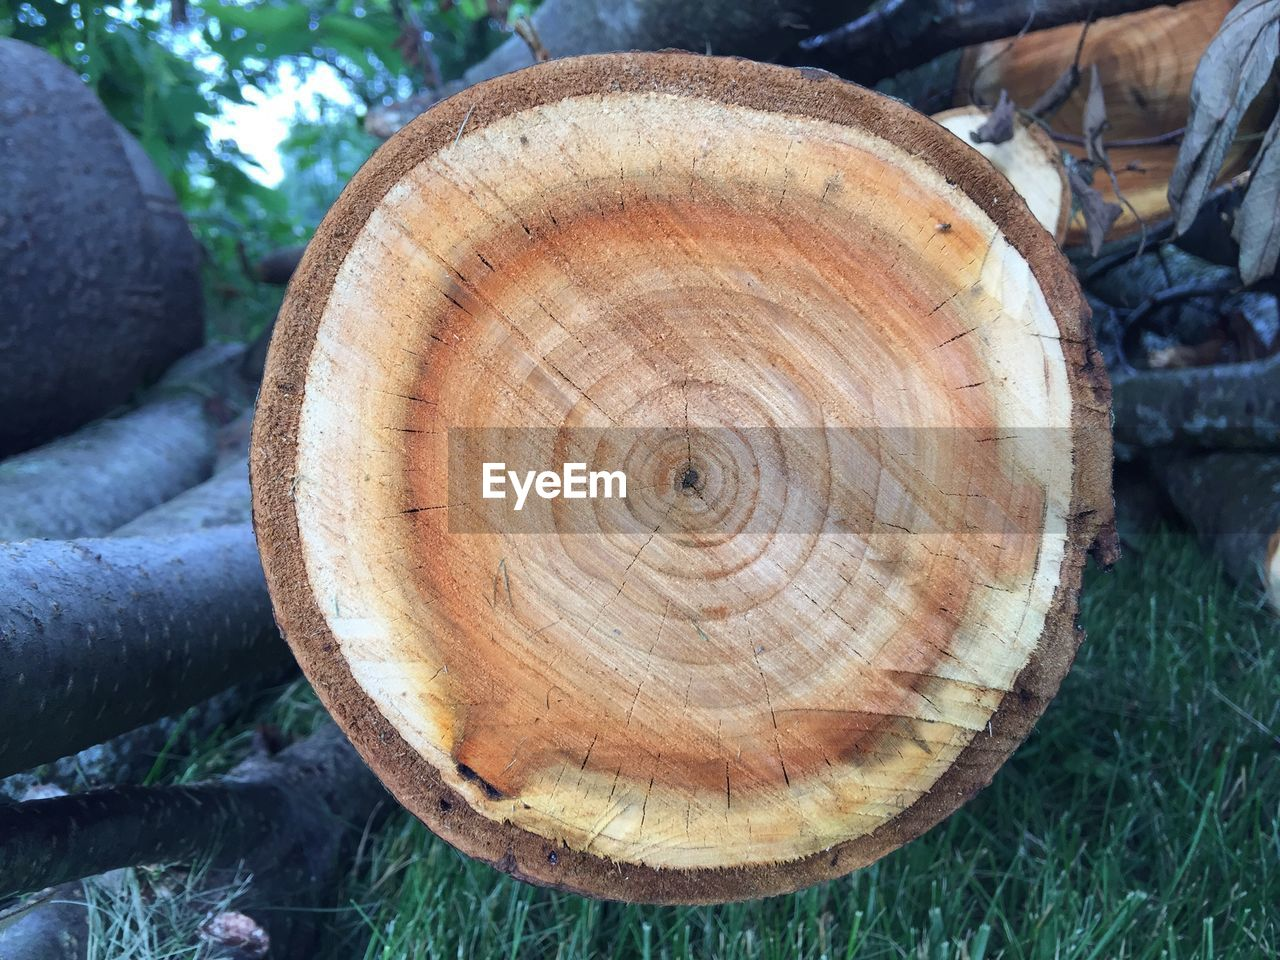 tree, close-up, wood - material, log, day, timber, focus on foreground, forest, wood, nature, land, plant, no people, outdoors, shape, field, deforestation, cross section, textured, tree ring, bark